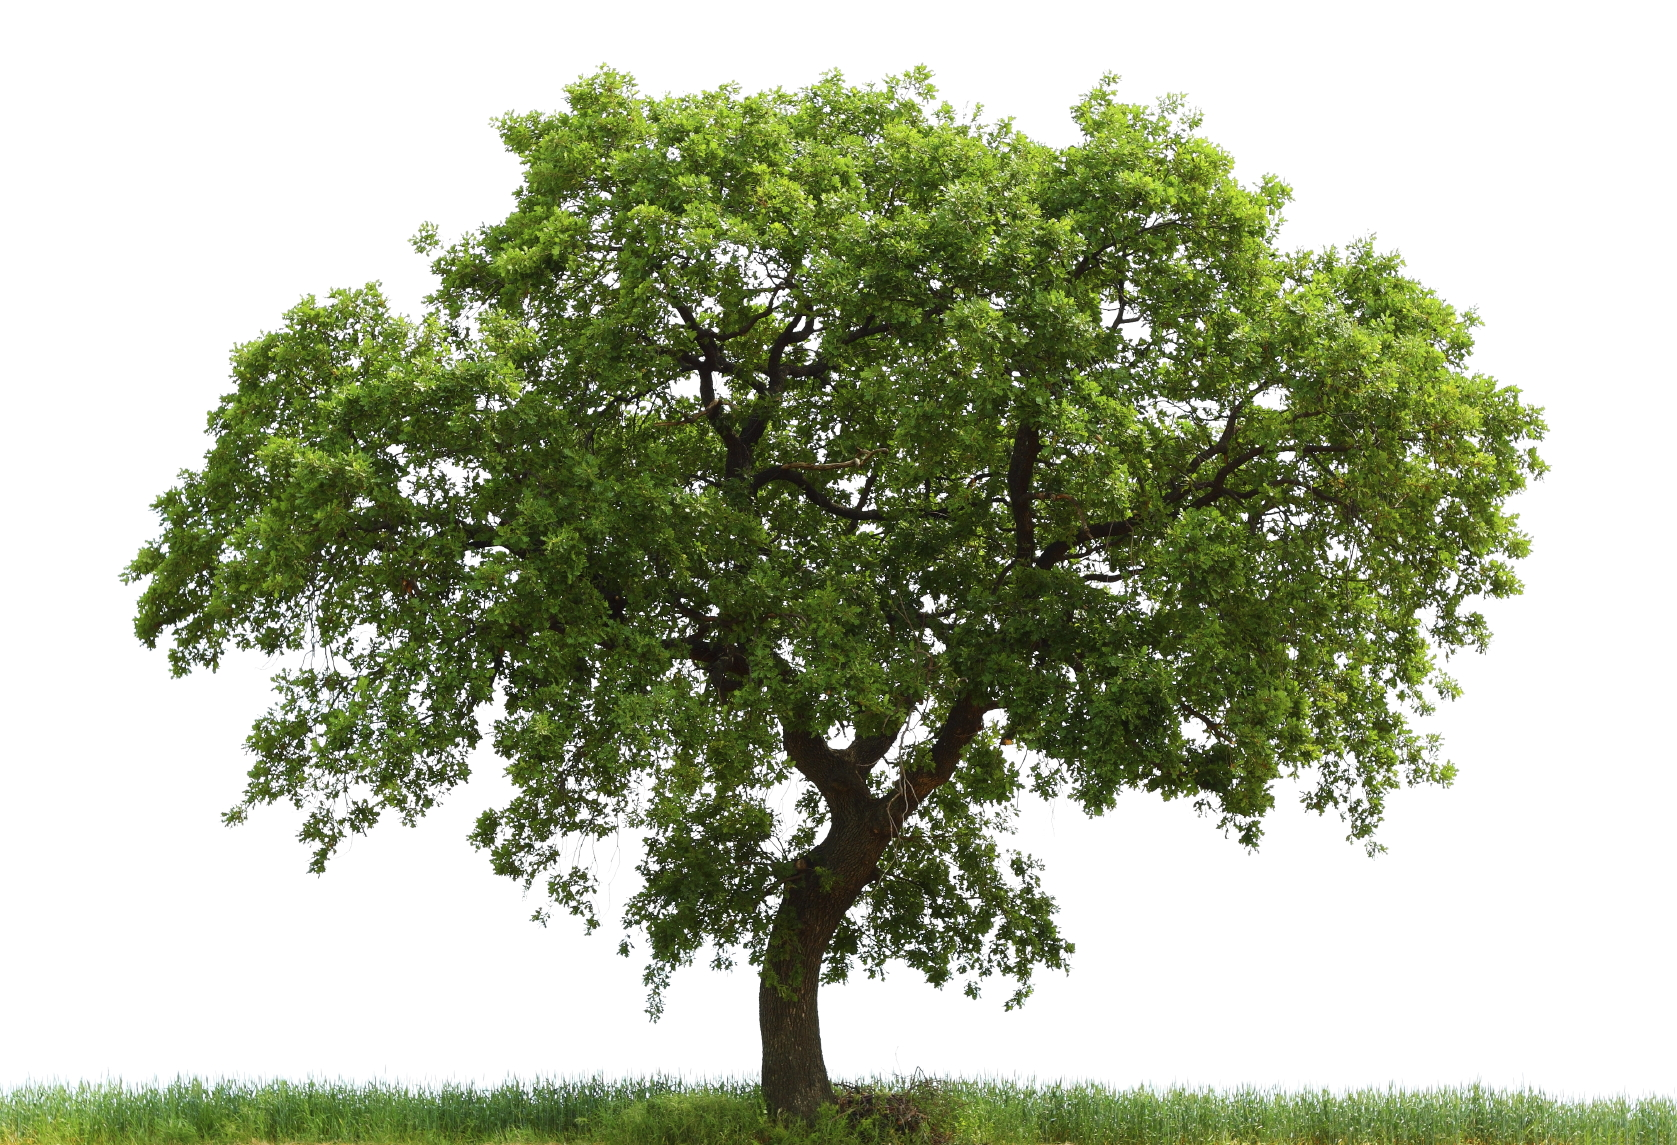 Oak tree identification guide for the purposes of